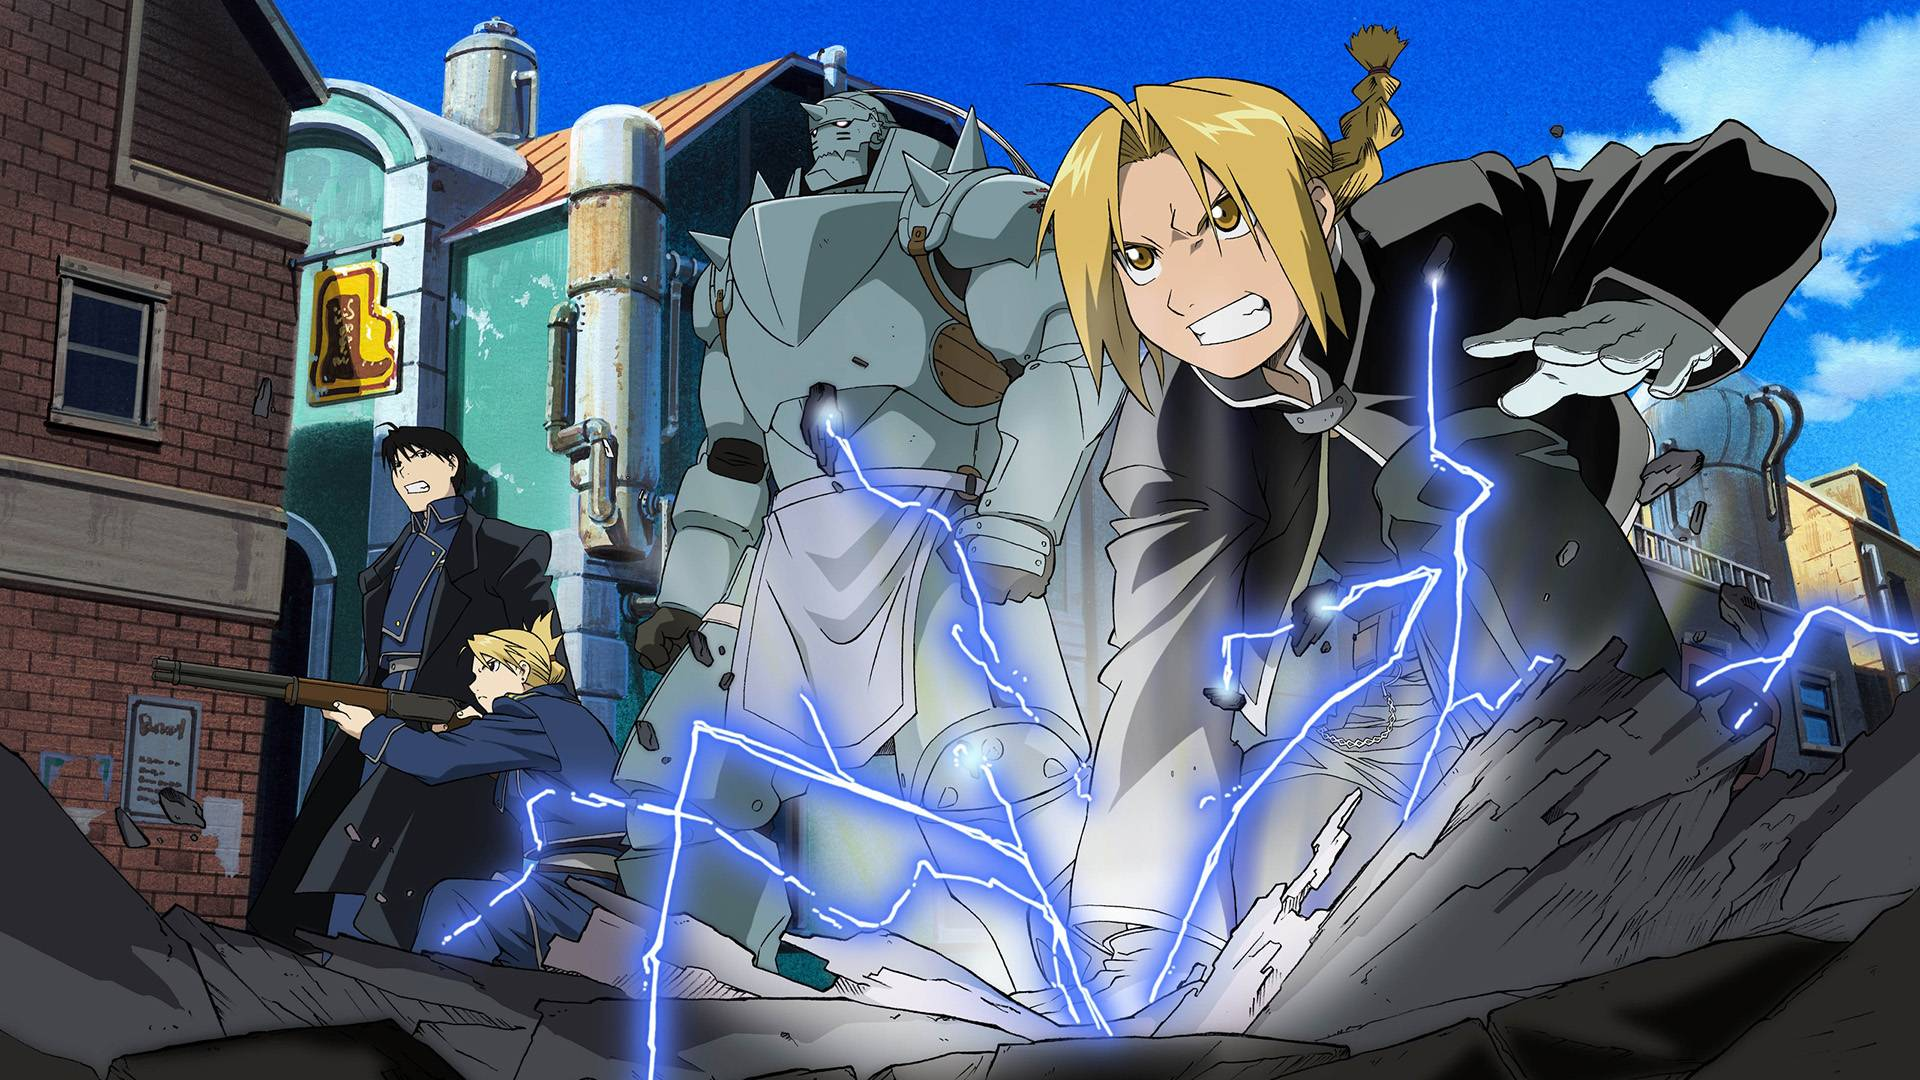 Review: Fullmetal Alchemist: Brotherhood – Under the Fridge